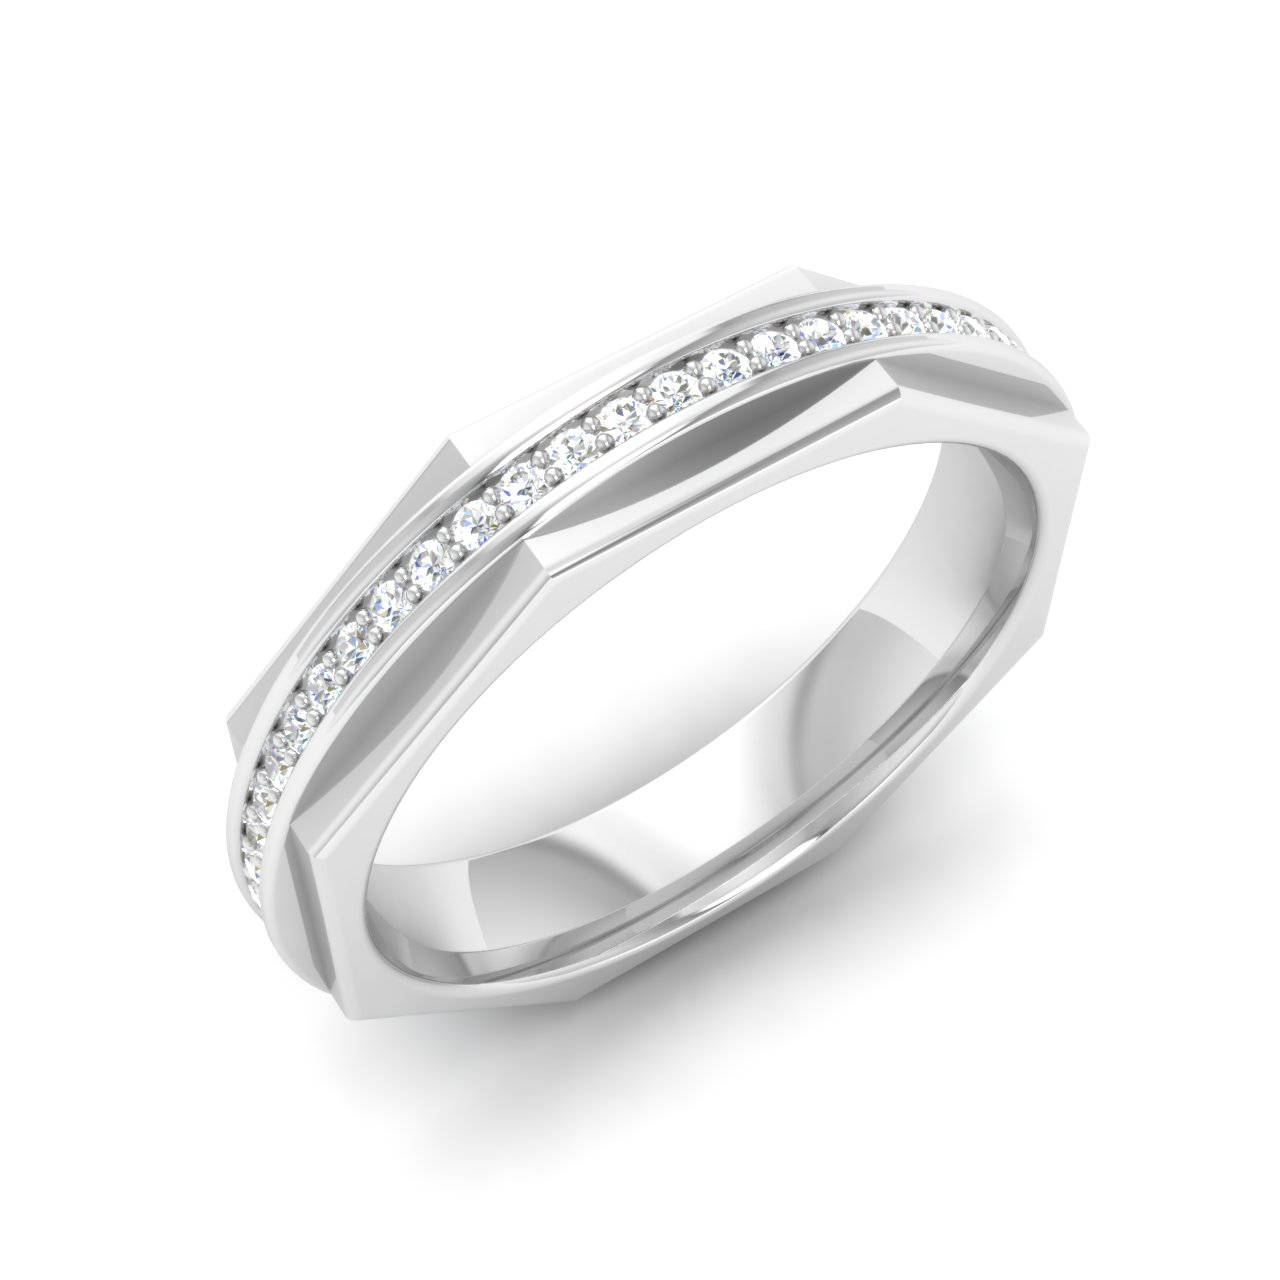 Real Round Cut Diamond Wedding Band In 14K White Gold | Diamond Eternity Ring | Certified Diamond Anniversary Band |Rose Gold Band For Women With Regard To Most Popular Certified Diamond Anniversary Bands In White Gold (View 4 of 25)